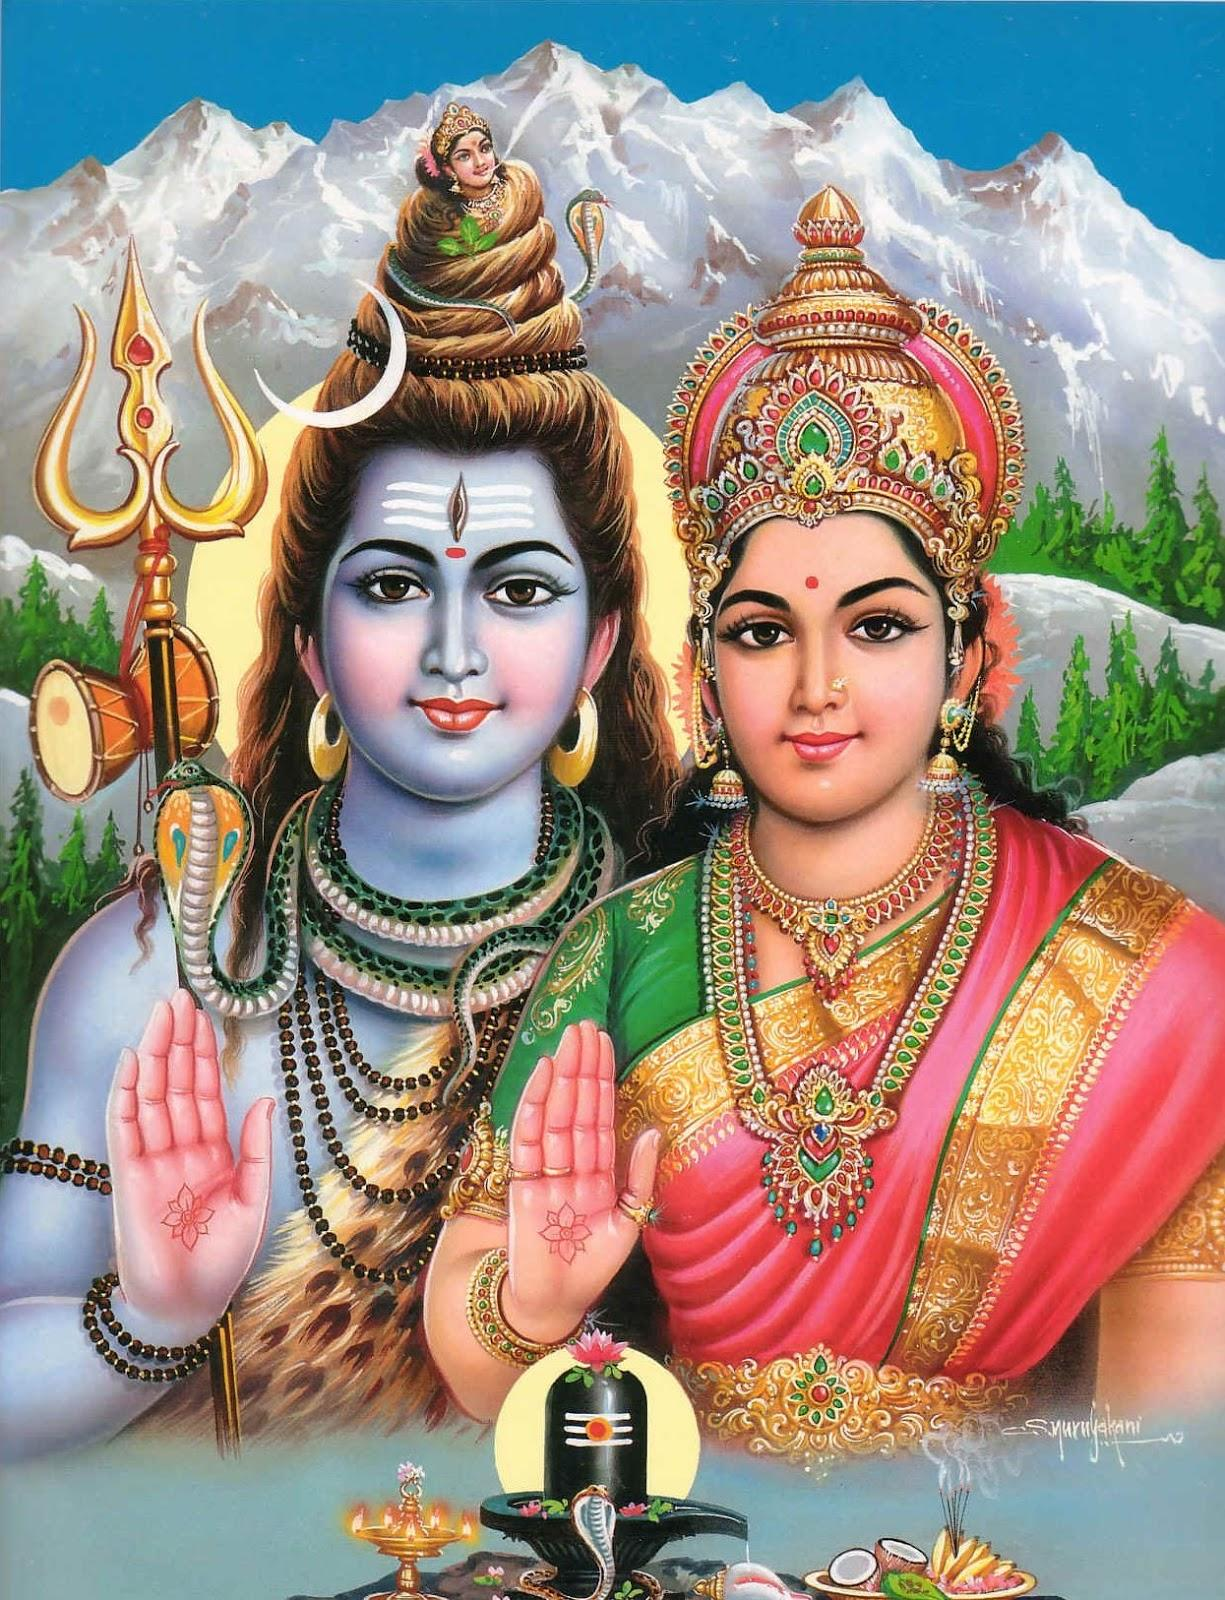 Lord shiv parvati images wallpapers | shiva parvati photos ... |Shiva Parvati Love Wallpaper